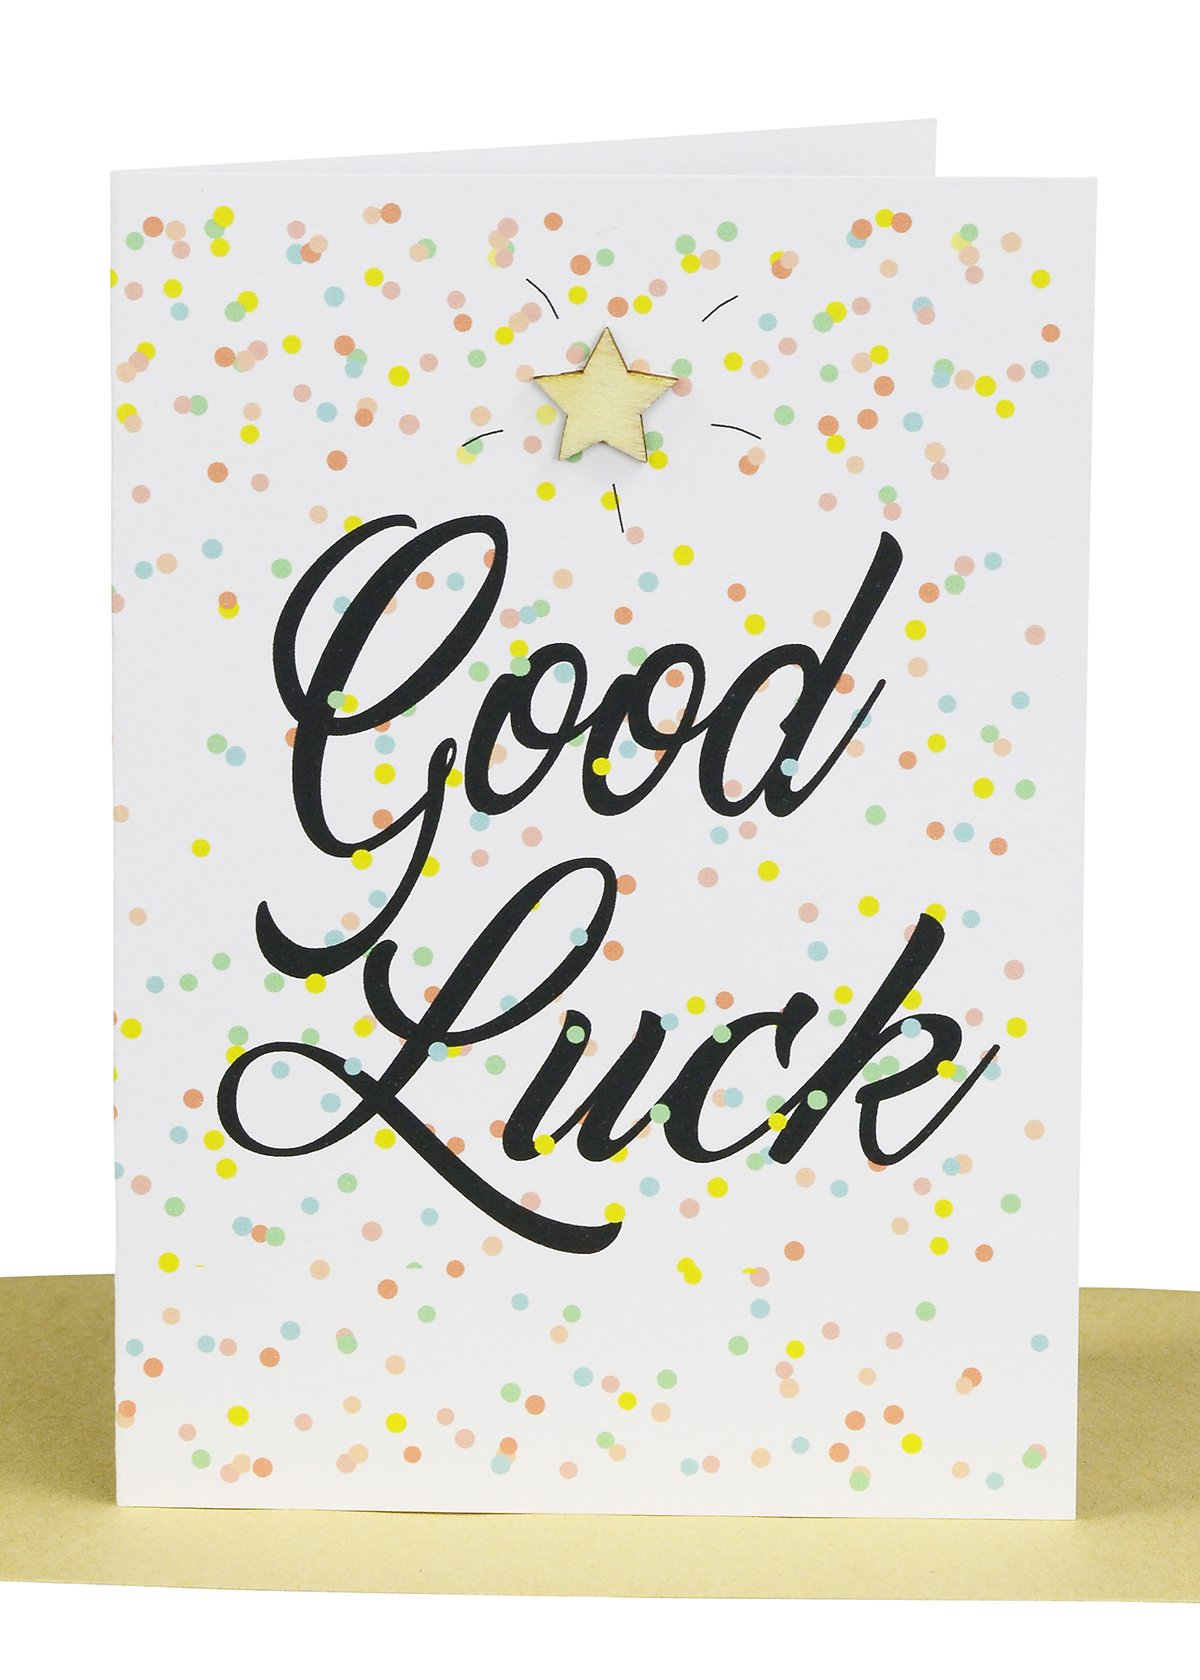 Wholesale good luck greeting card lils wholesale cards wholesale good luck greeting card m4hsunfo Choice Image